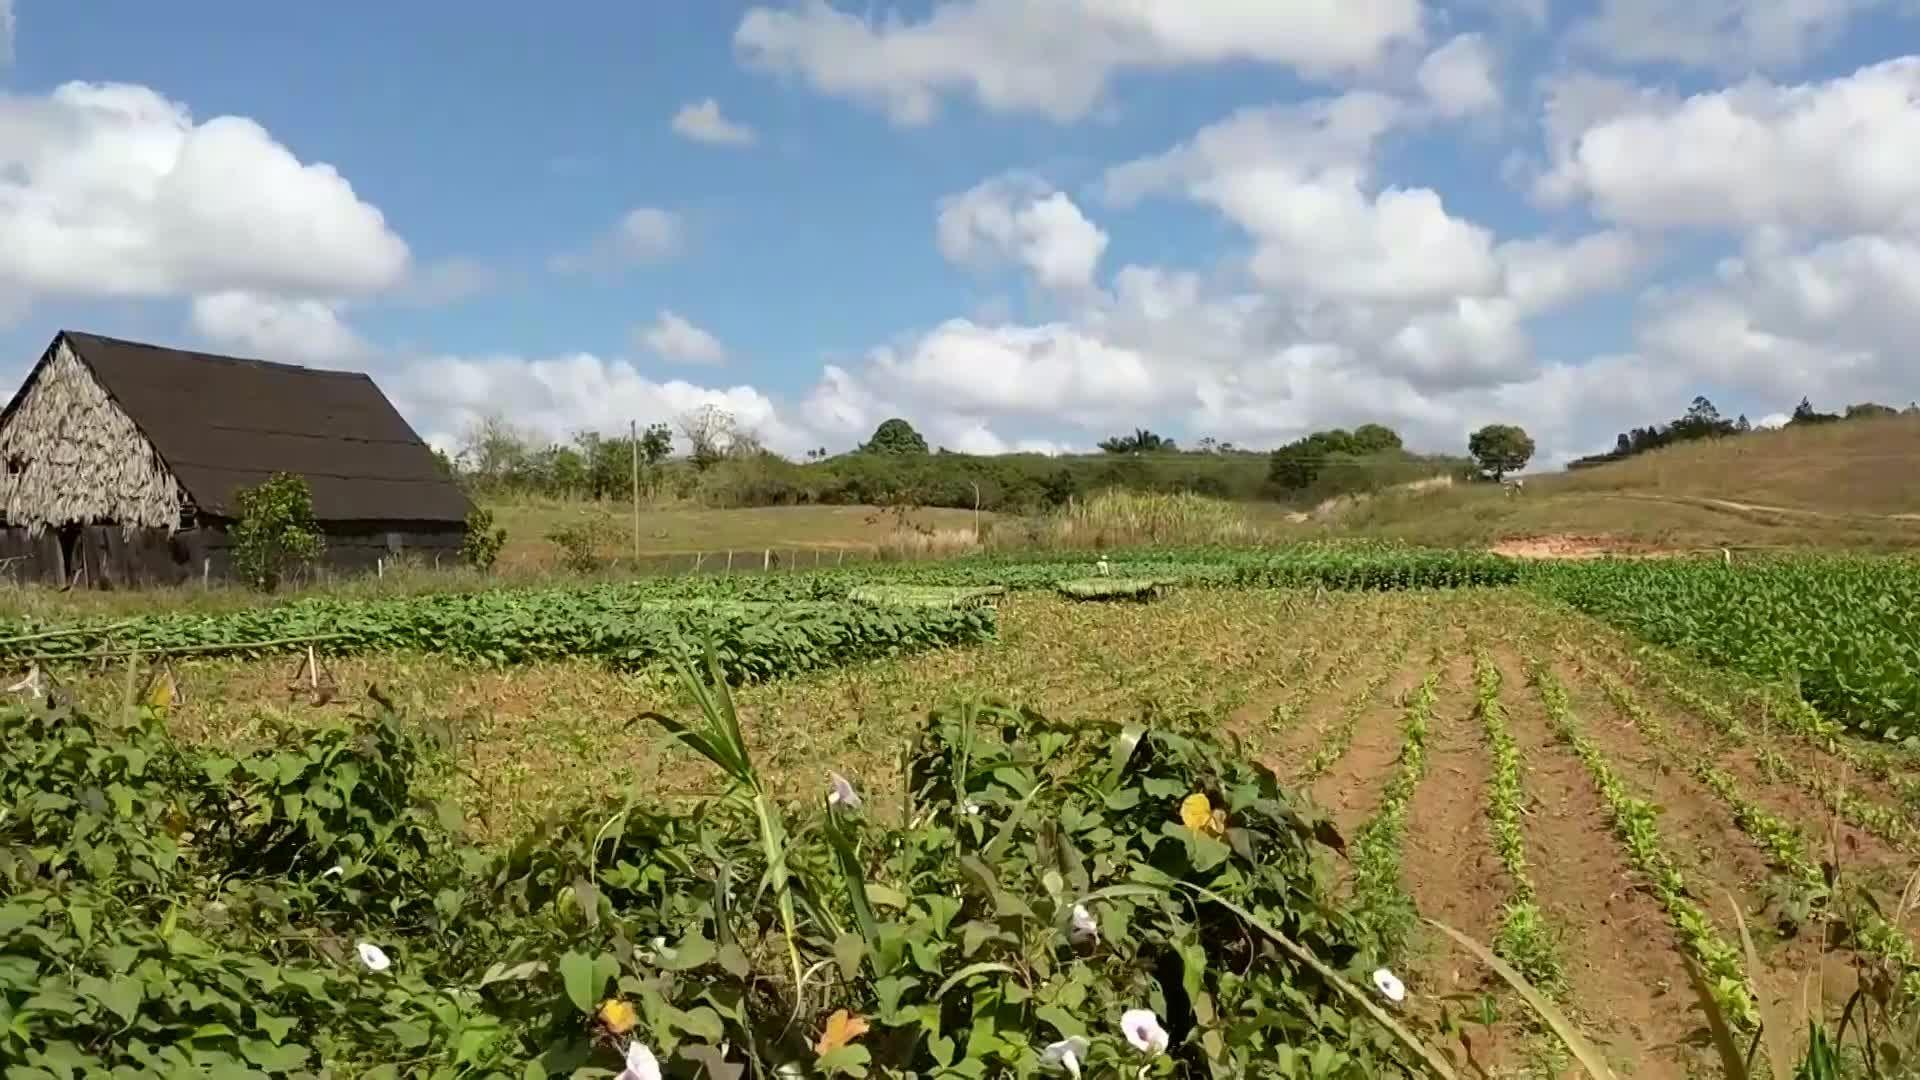 A Road Trip Through Cuba's Tobacco Country